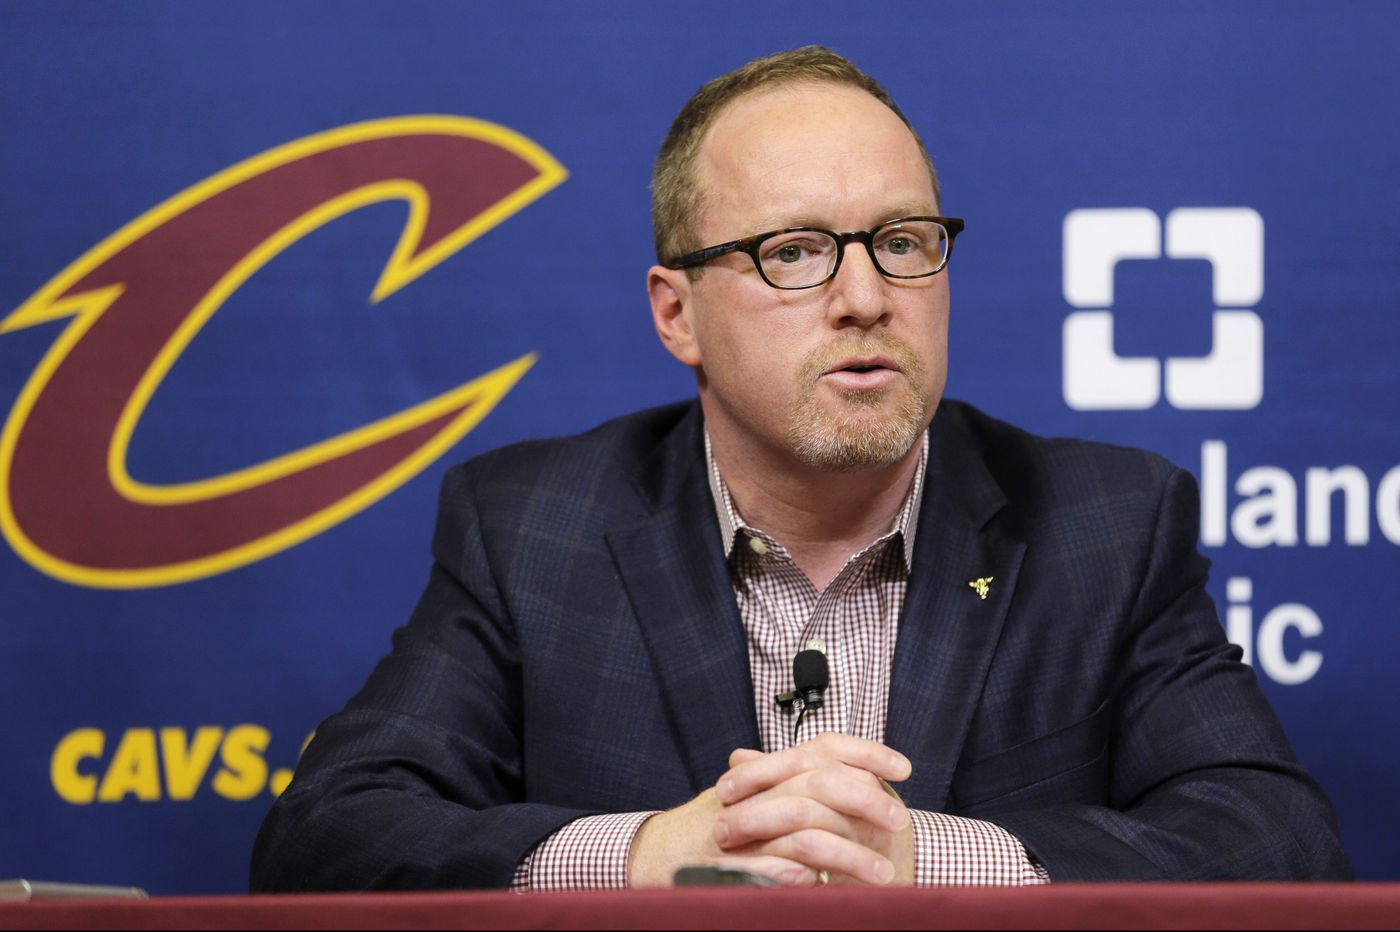 Bryan Colangelo resigns: David Griffin, other candidates who may take over as Sixers GM